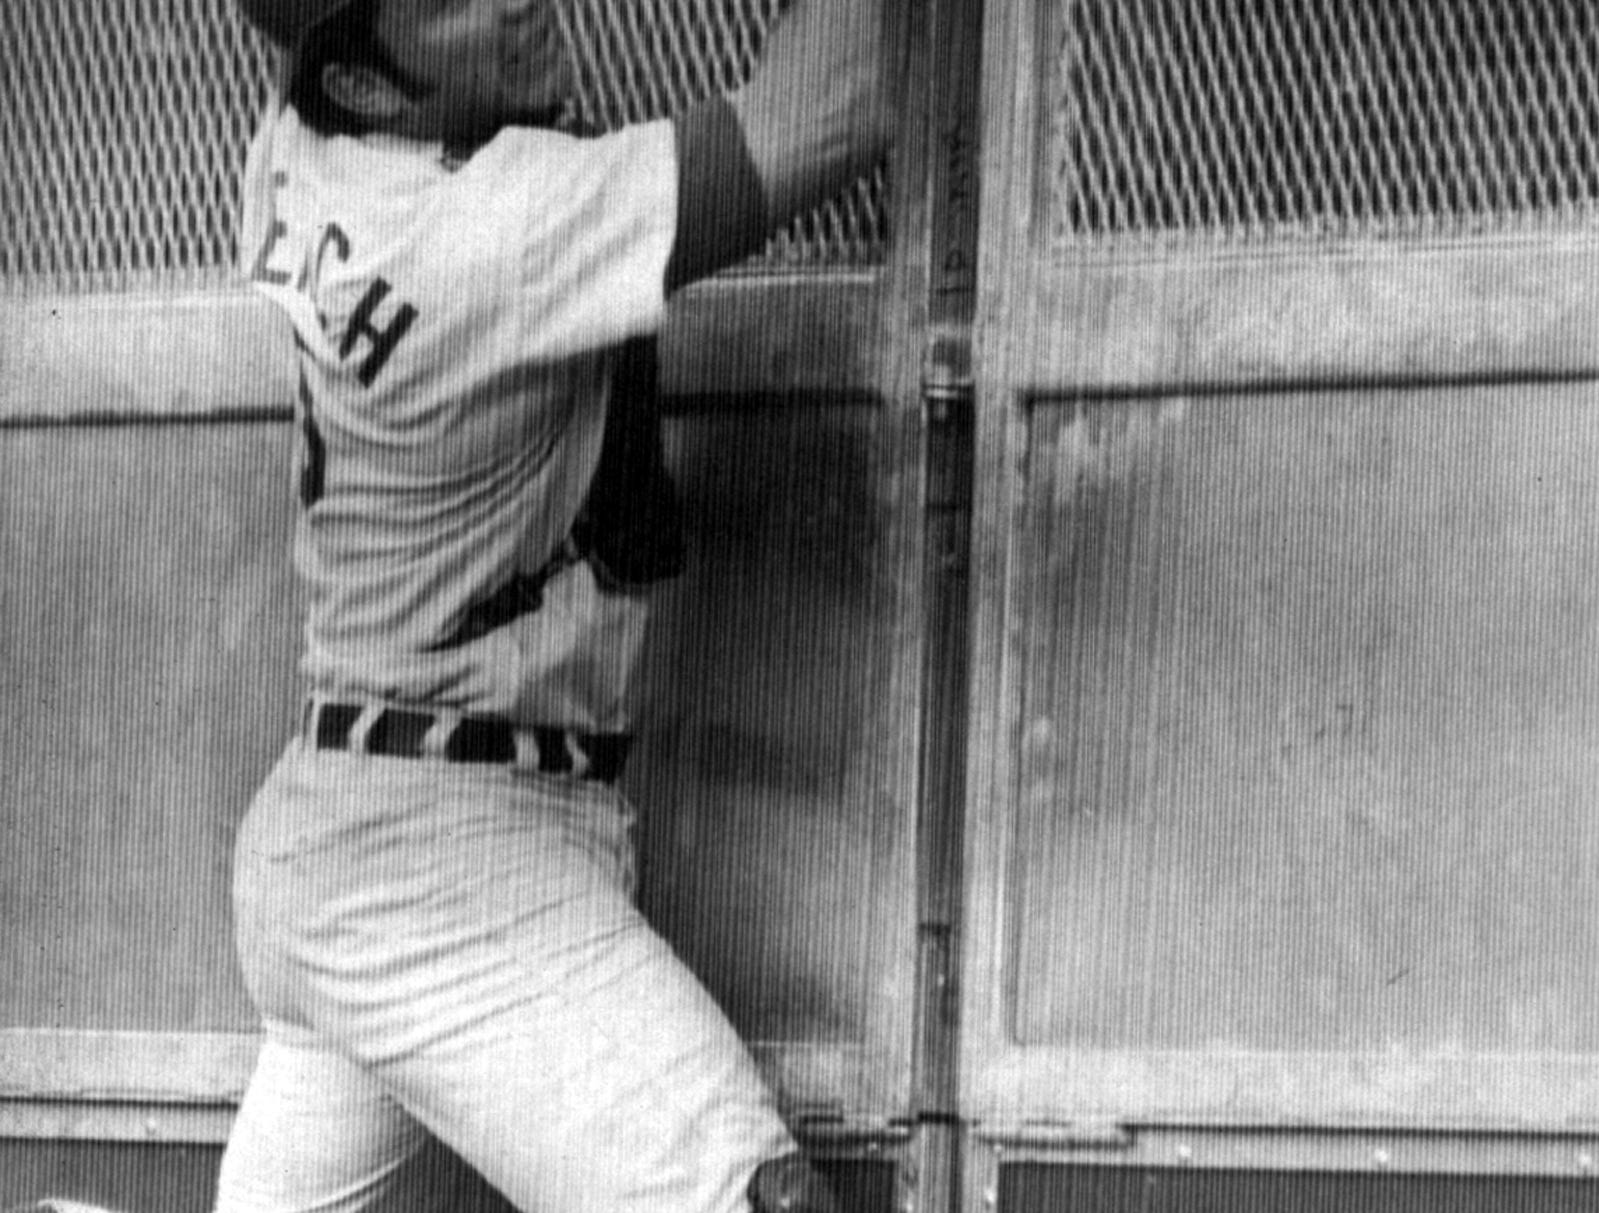 OCTOBER 5, 1970: Johnny Bench, Cincinnati catcher, snags foul from bat of Pittsburgh Pirates Bill Mazeroski in eighth inning of today's third game in the National League playoffs at Cincinnati. Pirates protested that he had trapped the ball against the screen. AP Photo scanned August 7, 2013